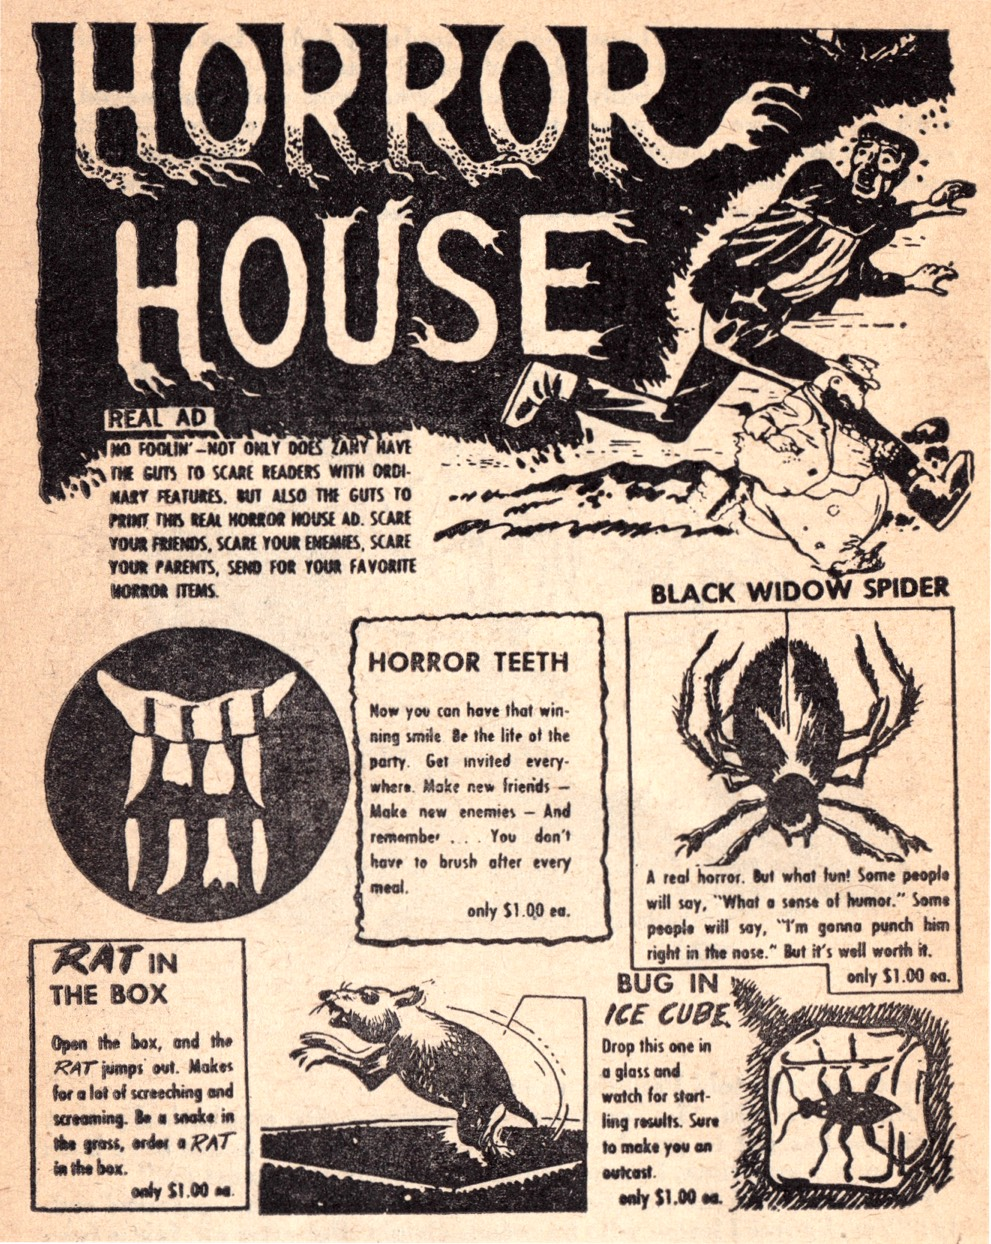 and everything else too: Horror House - Real Ad!